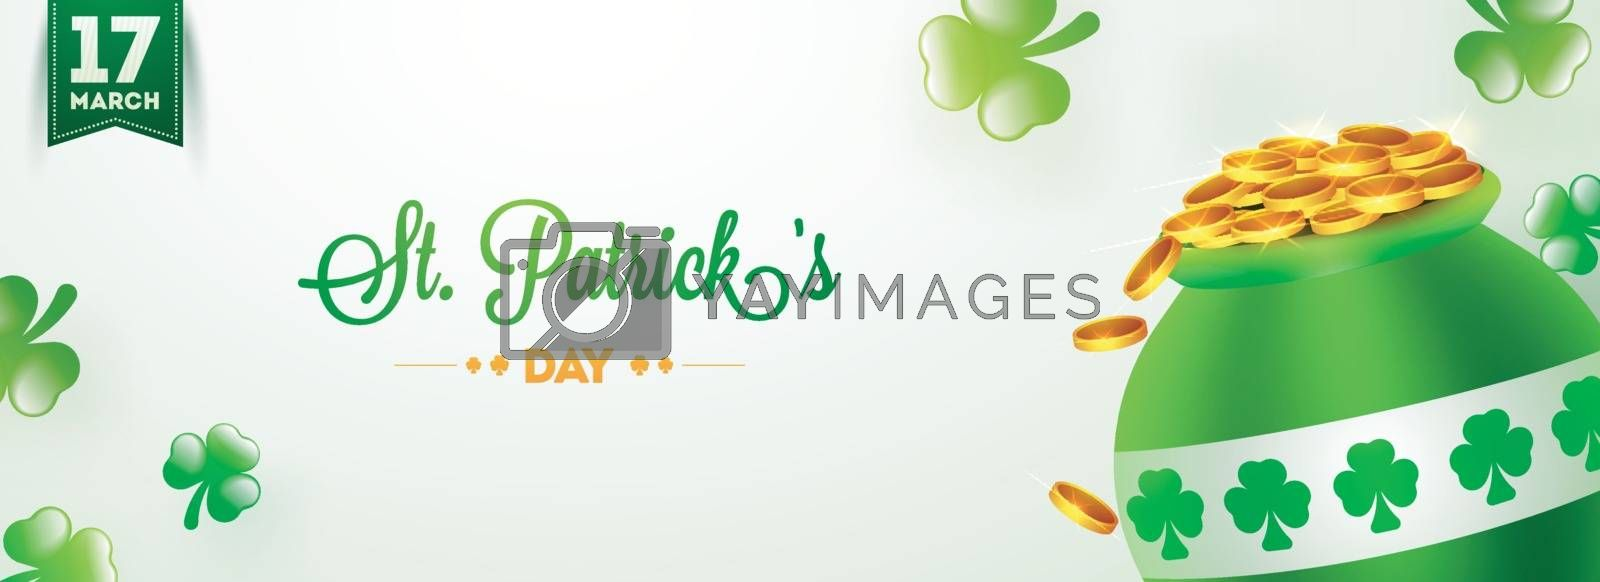 Royalty free image of 17 March, St. Patrick's Day header or banner design with traditi by aispl